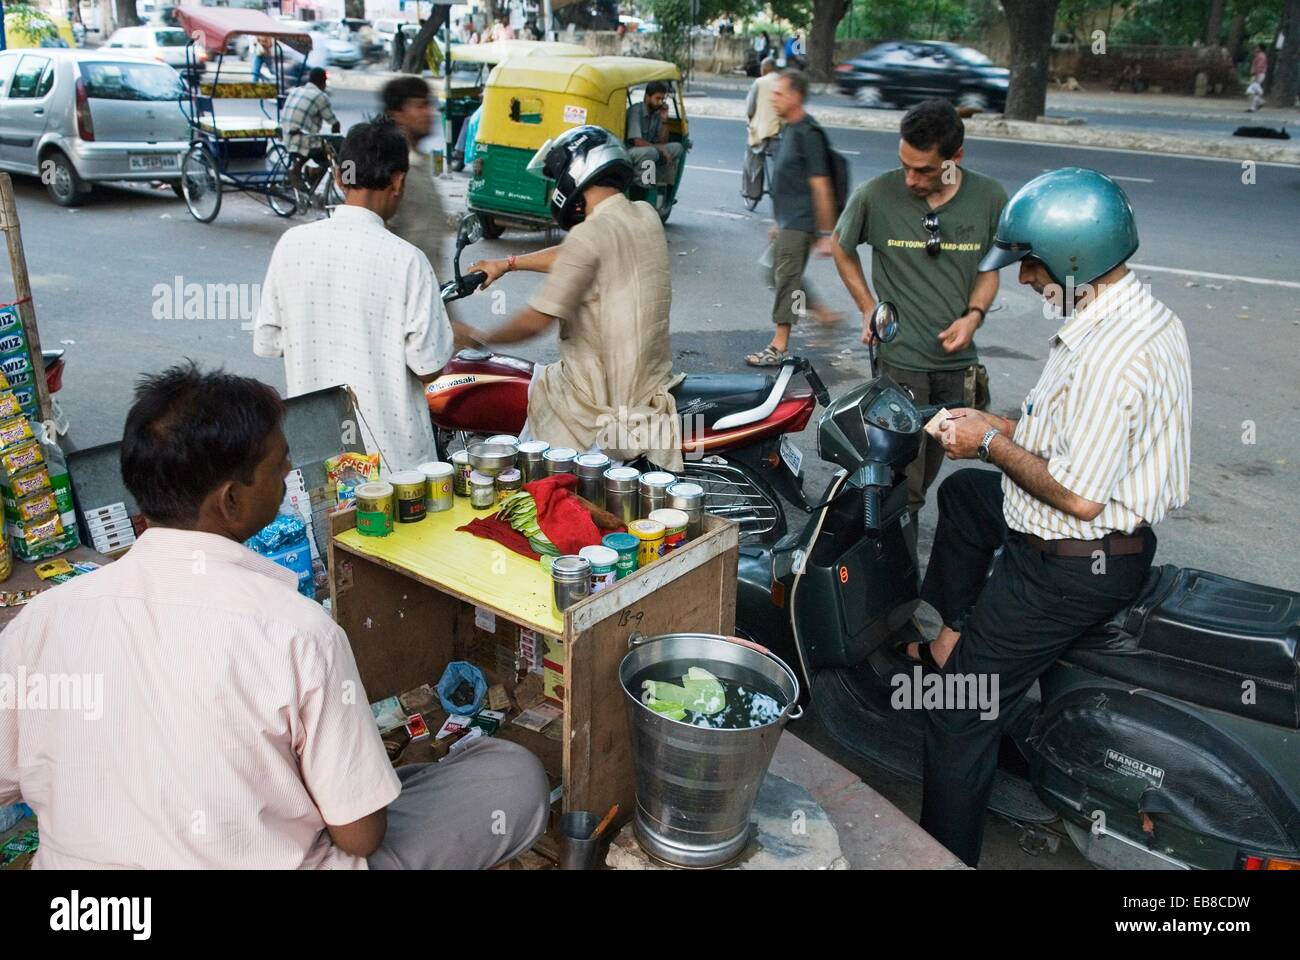 paan, betel leaf, vendor in a street of Delhi, India, Asia - Stock Image